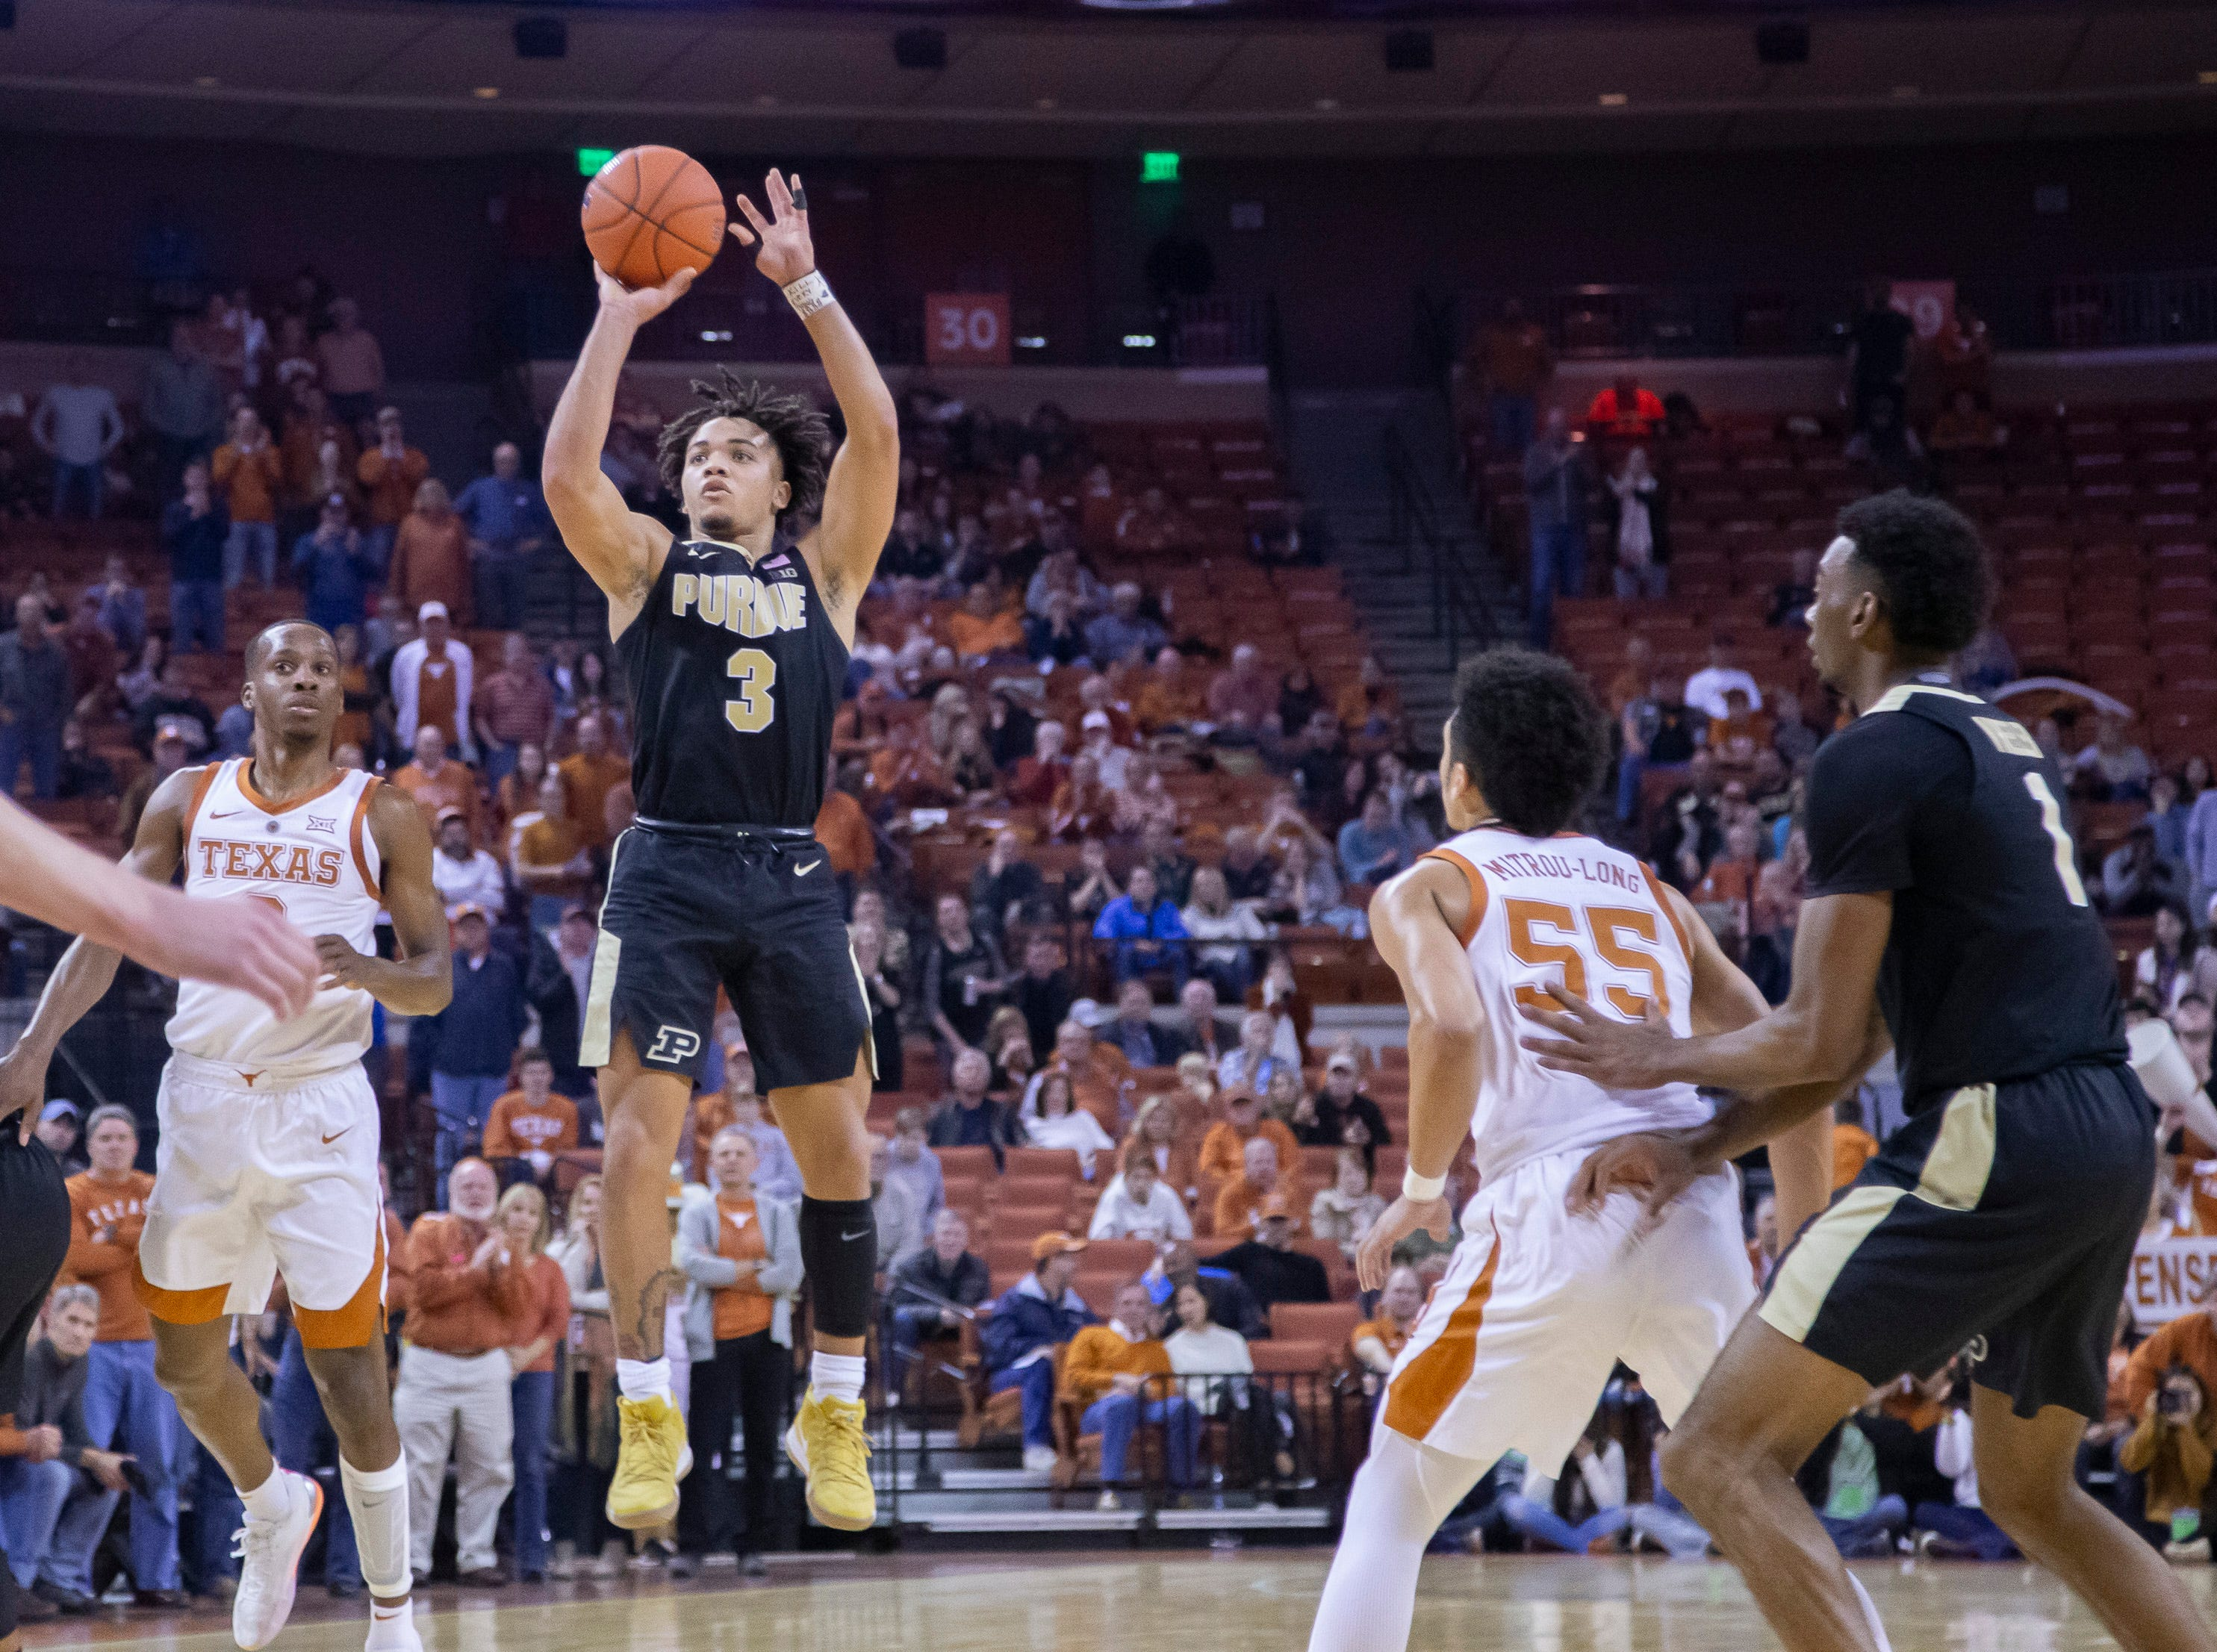 Dec 9, 2018; Austin, TX, USA; Purdue Boilermakers guard Carsen Edwards (3) goes for a long jump shot against the Texas Longhorns during the second half at Frank Erwin Center. Mandatory Credit: John Gutierrez-USA TODAY Sports